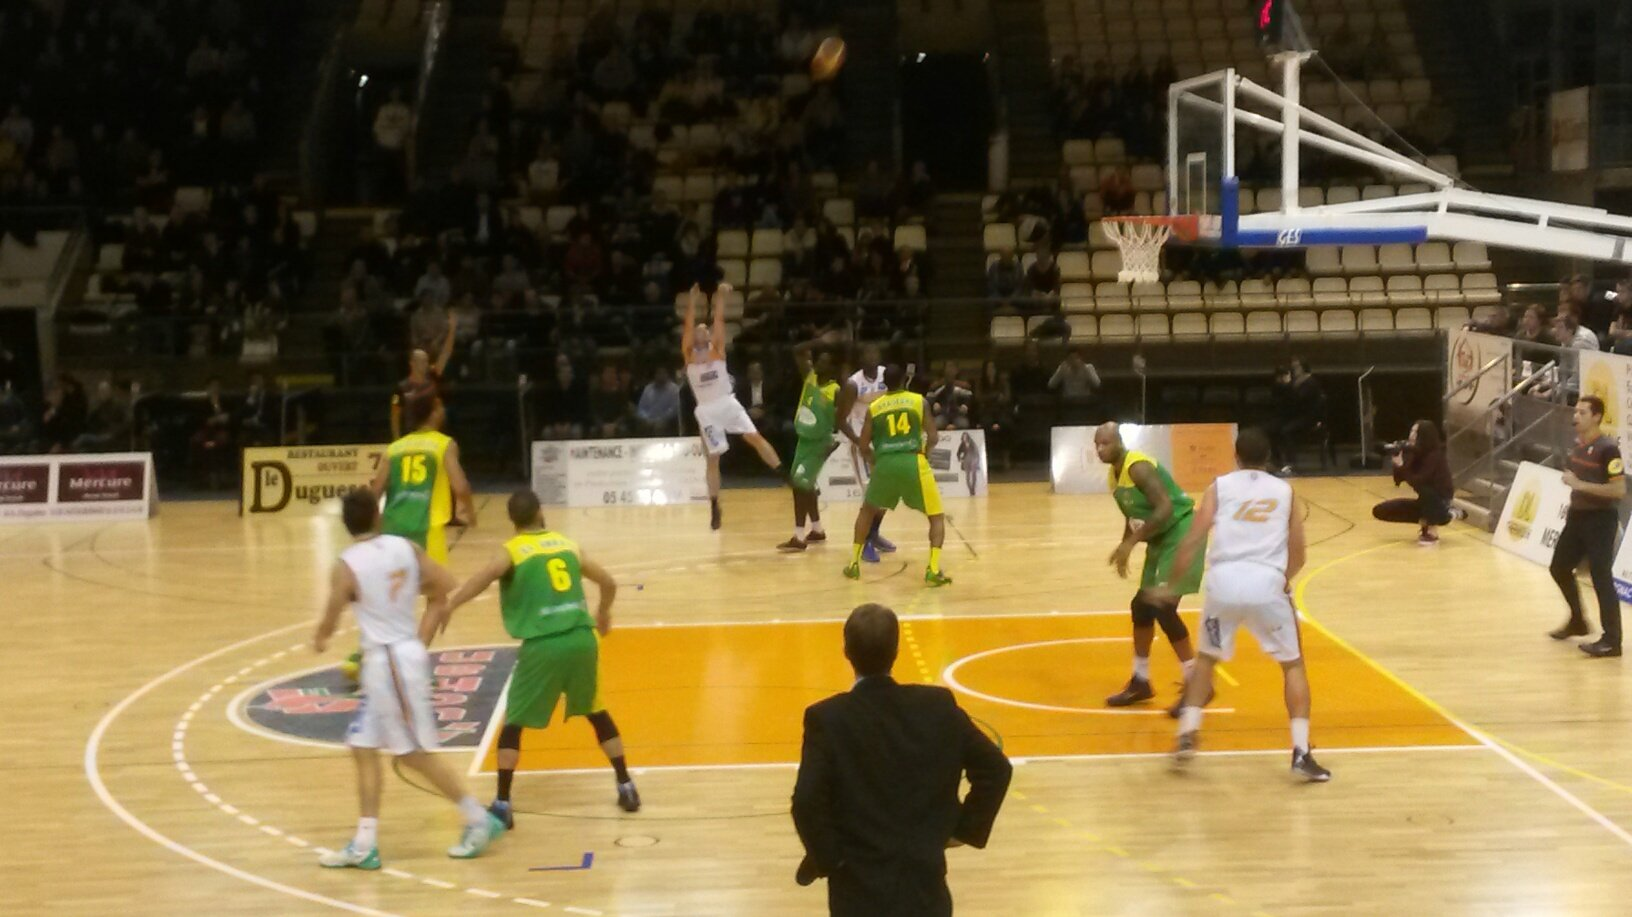 Basket : Cognac gagne d'un point face � Vichy, 75 � 74